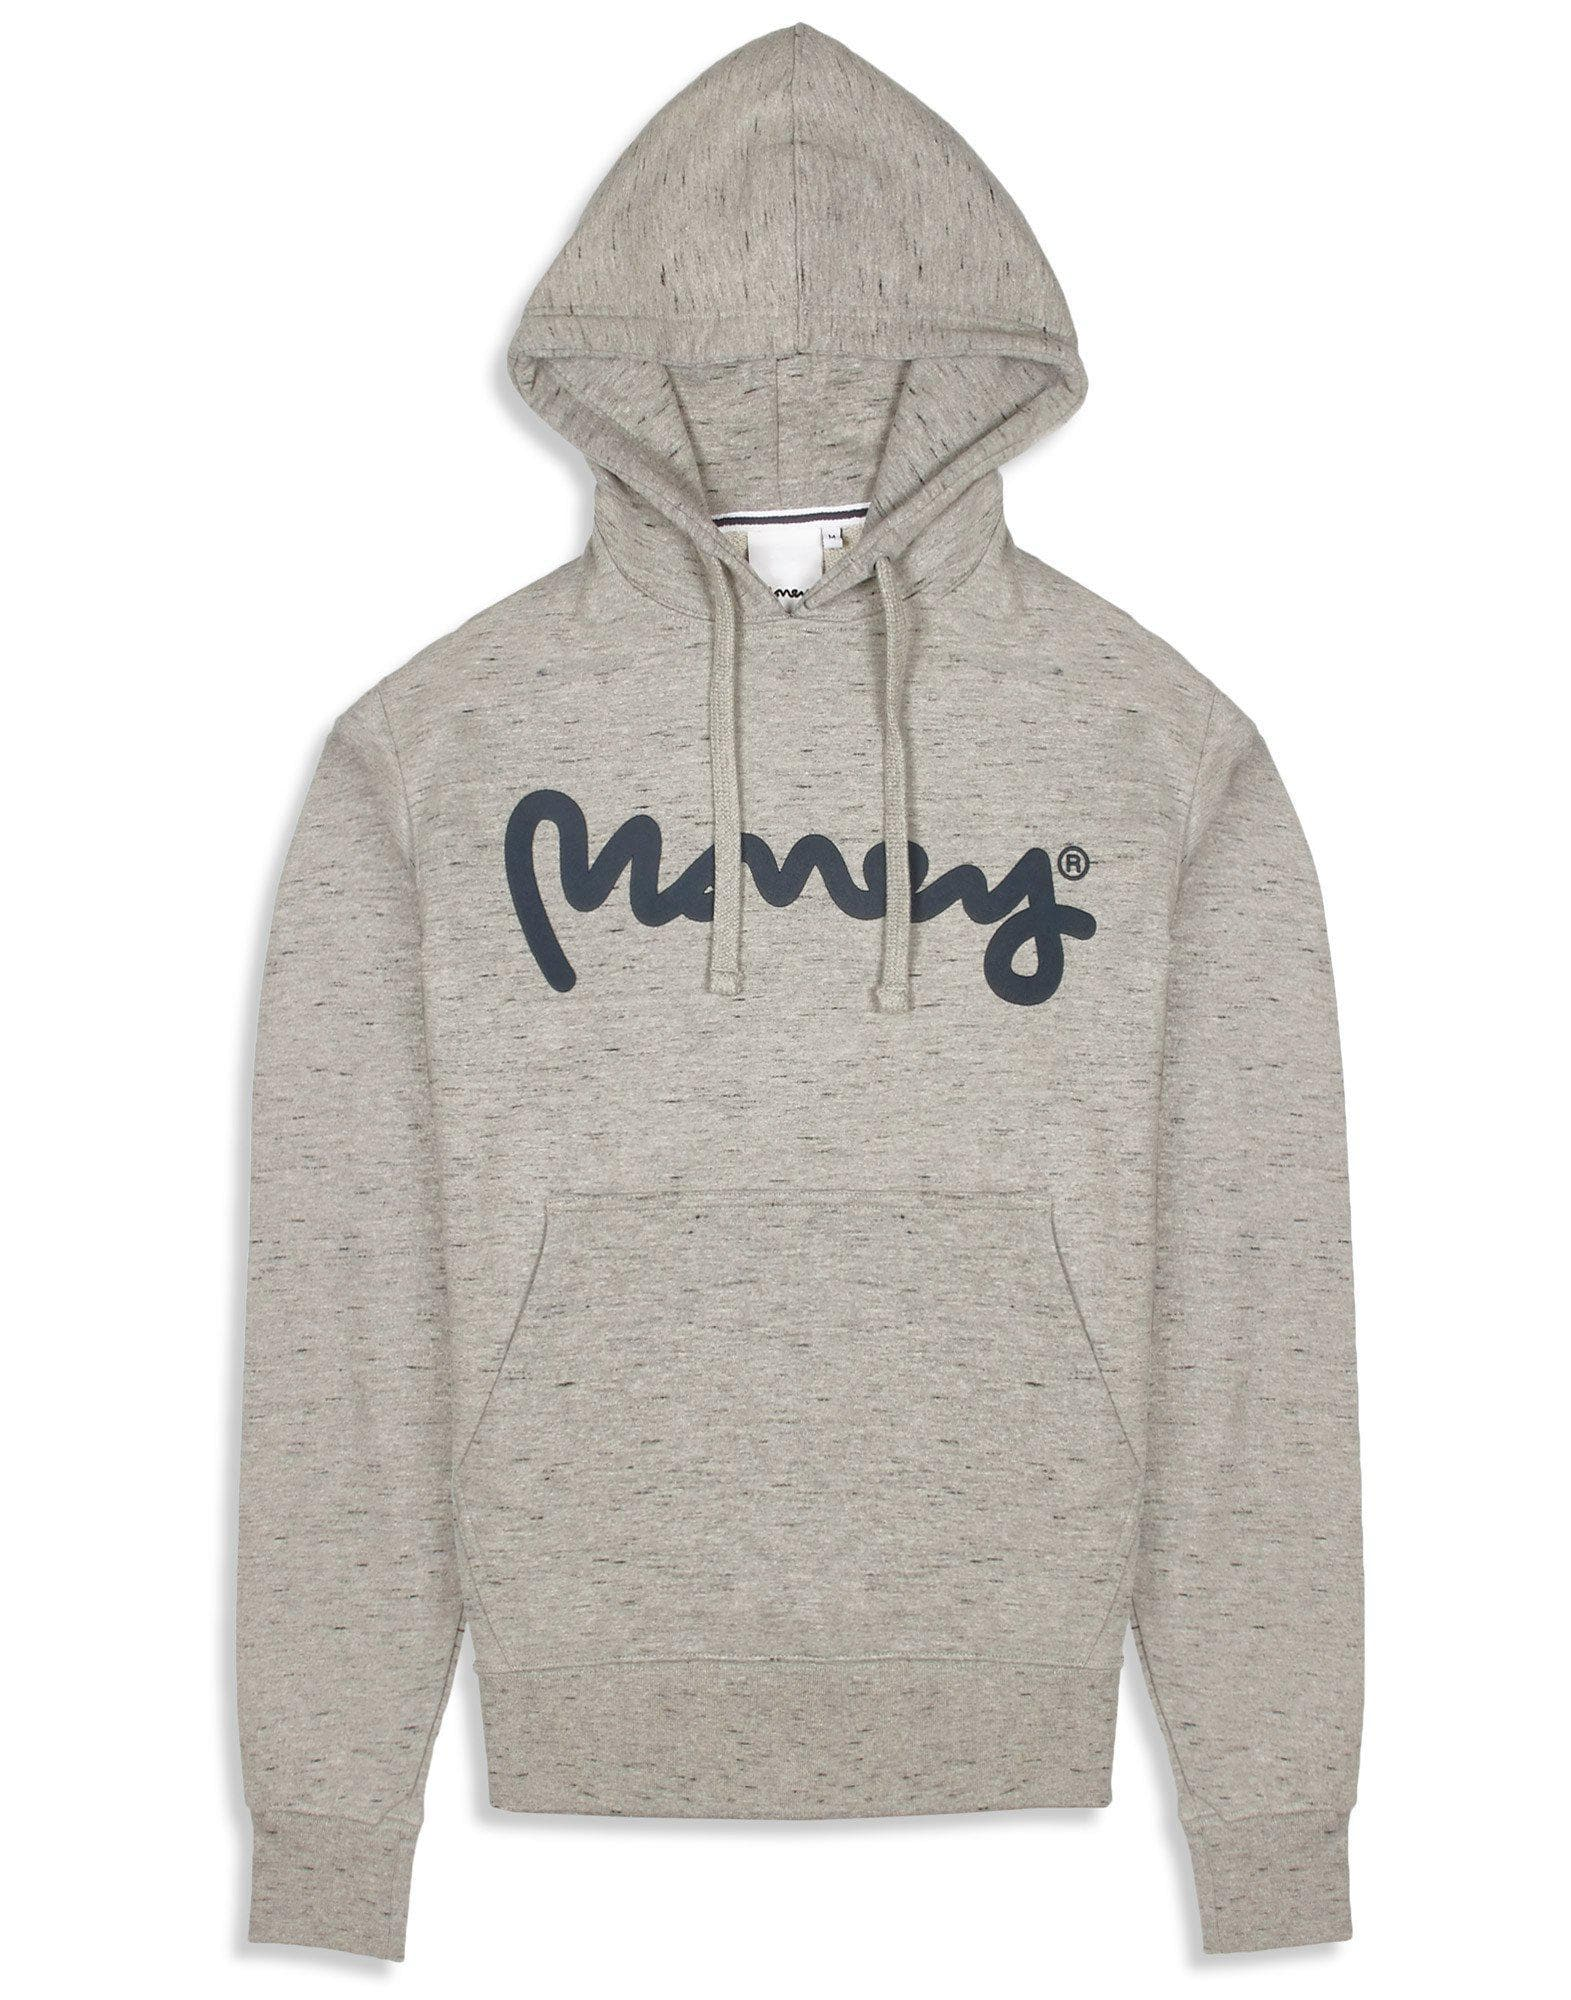 Money Clothing Sig Ape Hood